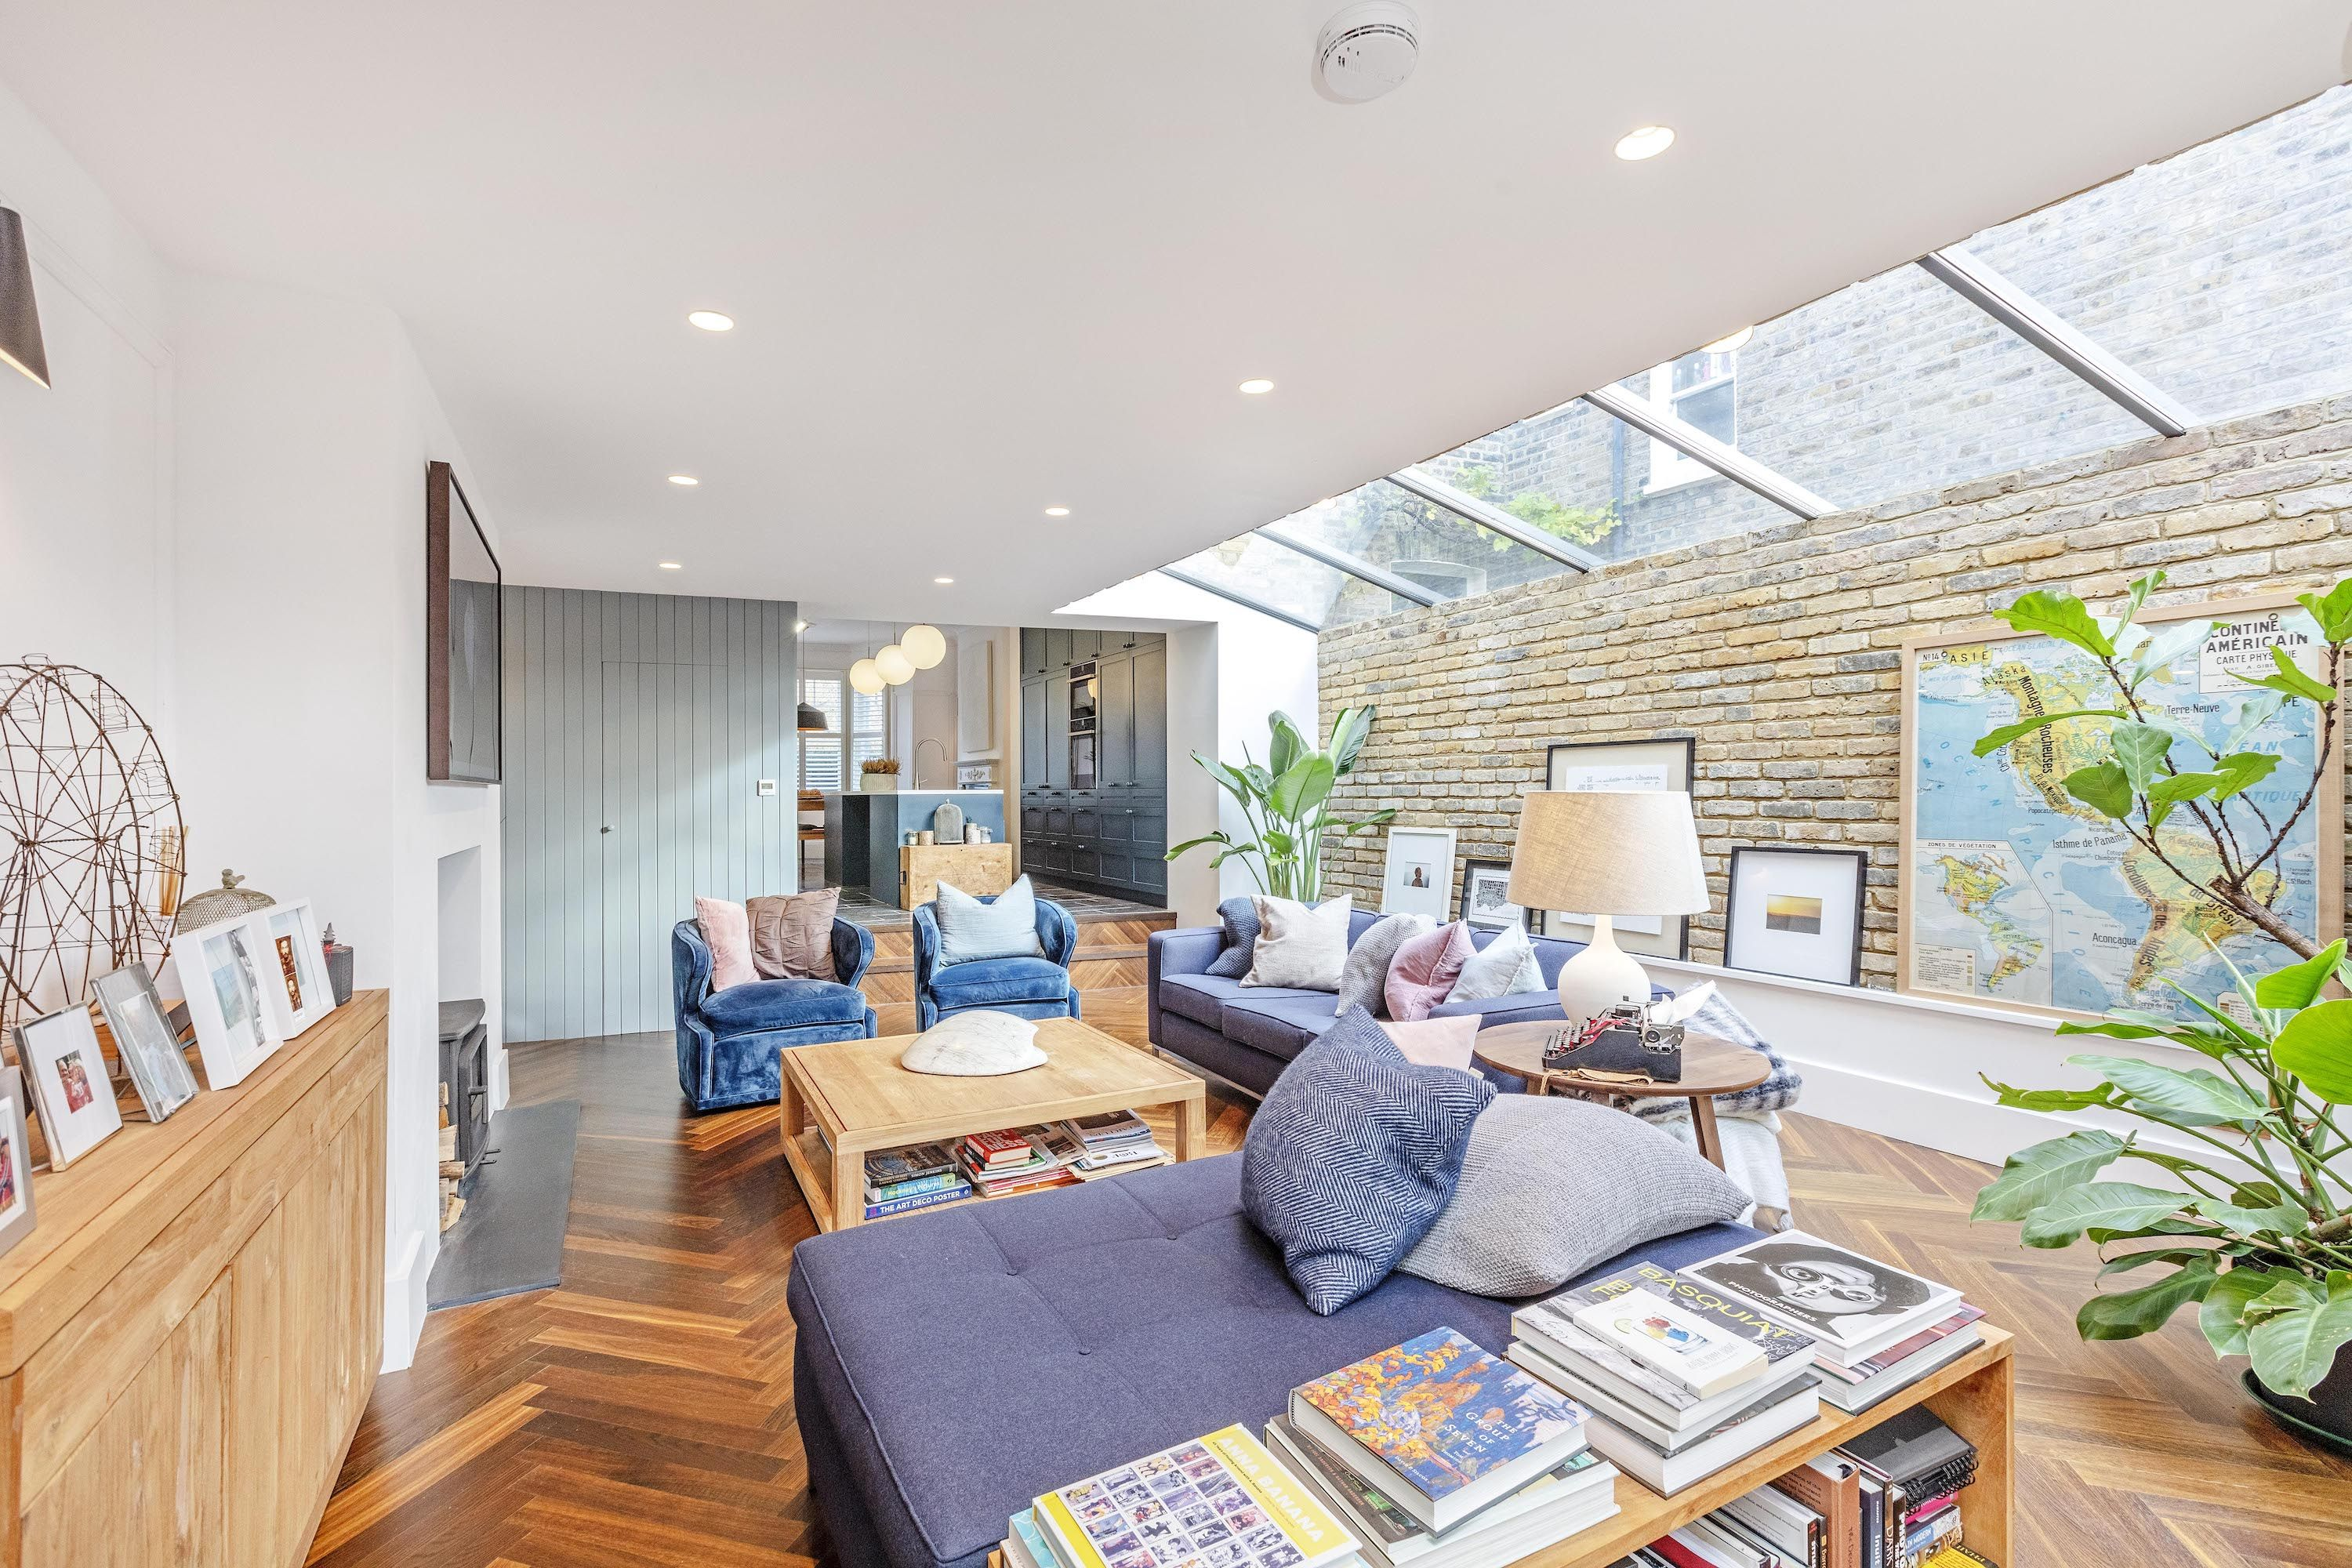 Wonderful family home for sale in Barnes Village